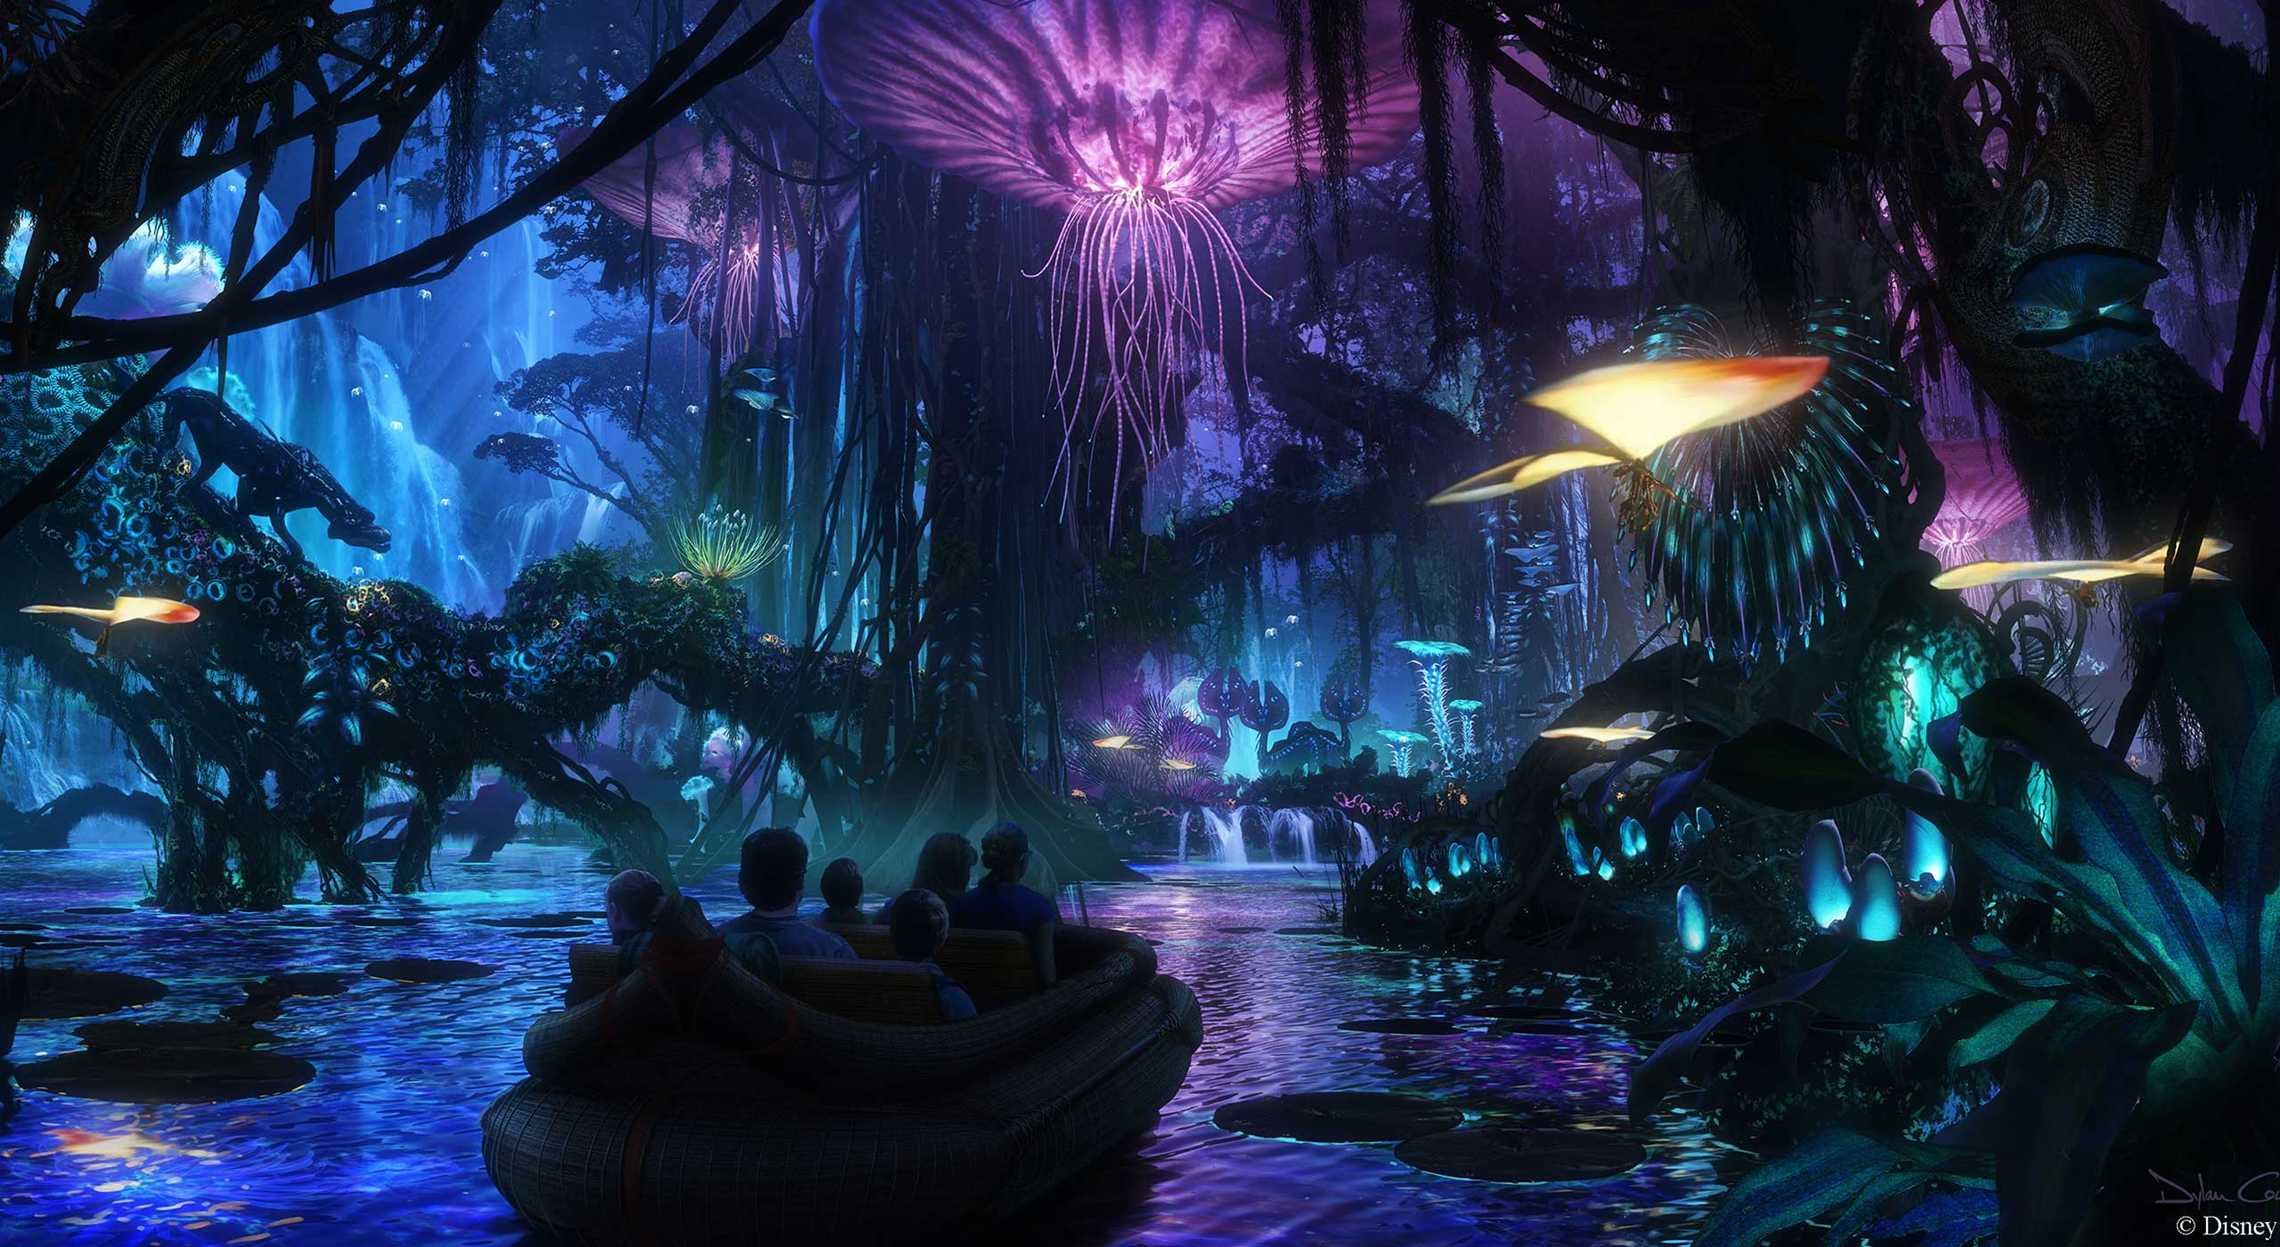 Na'Vi River Journey AVATAR World of Pandora Animal Kingdom